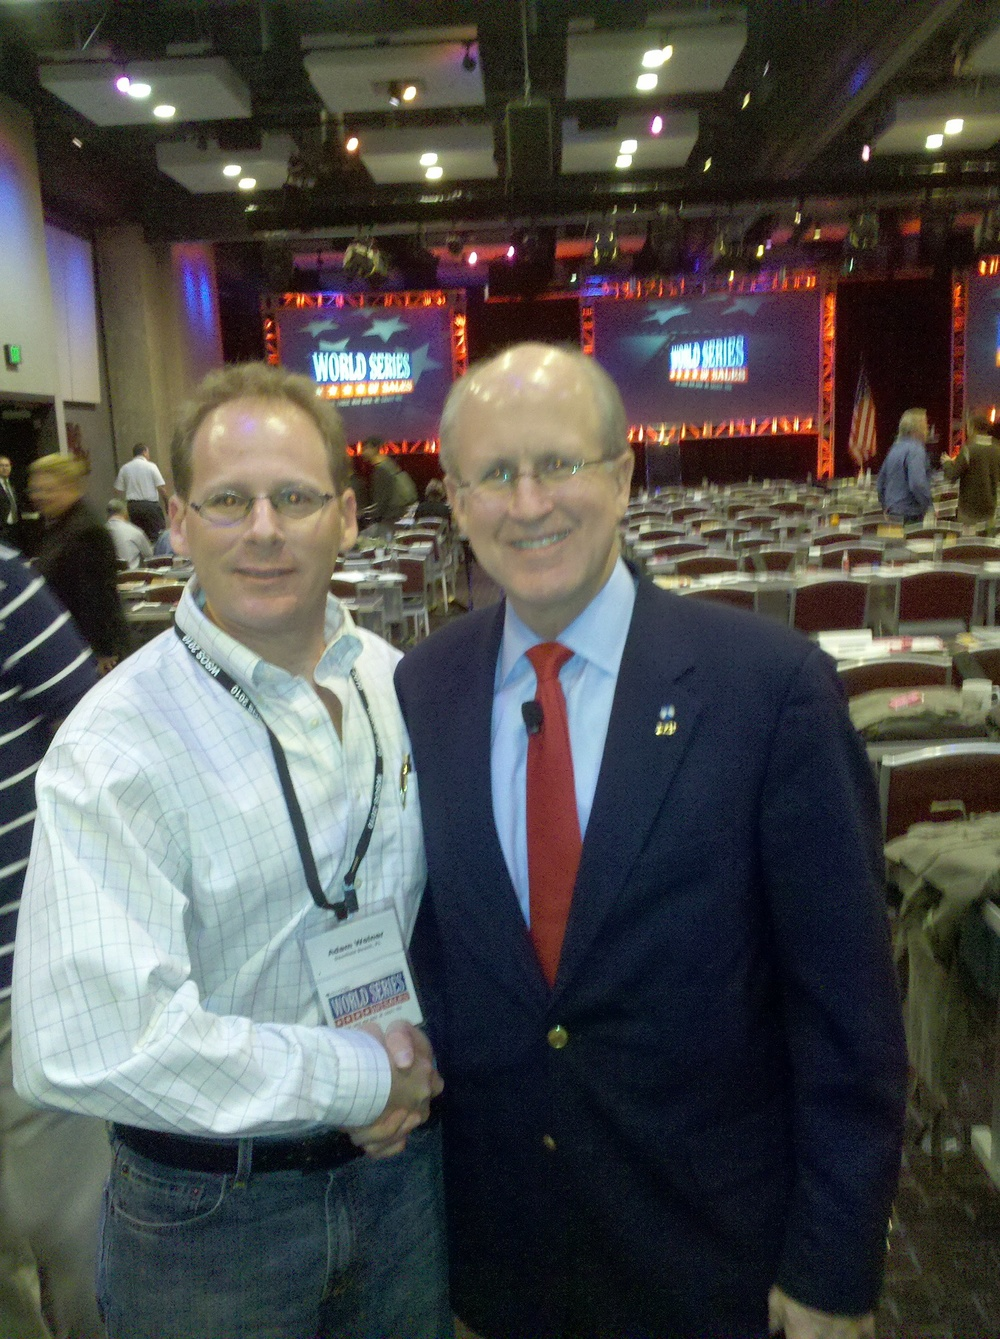 Adam Weiner with David Walker ex - Comptroller general of the United States